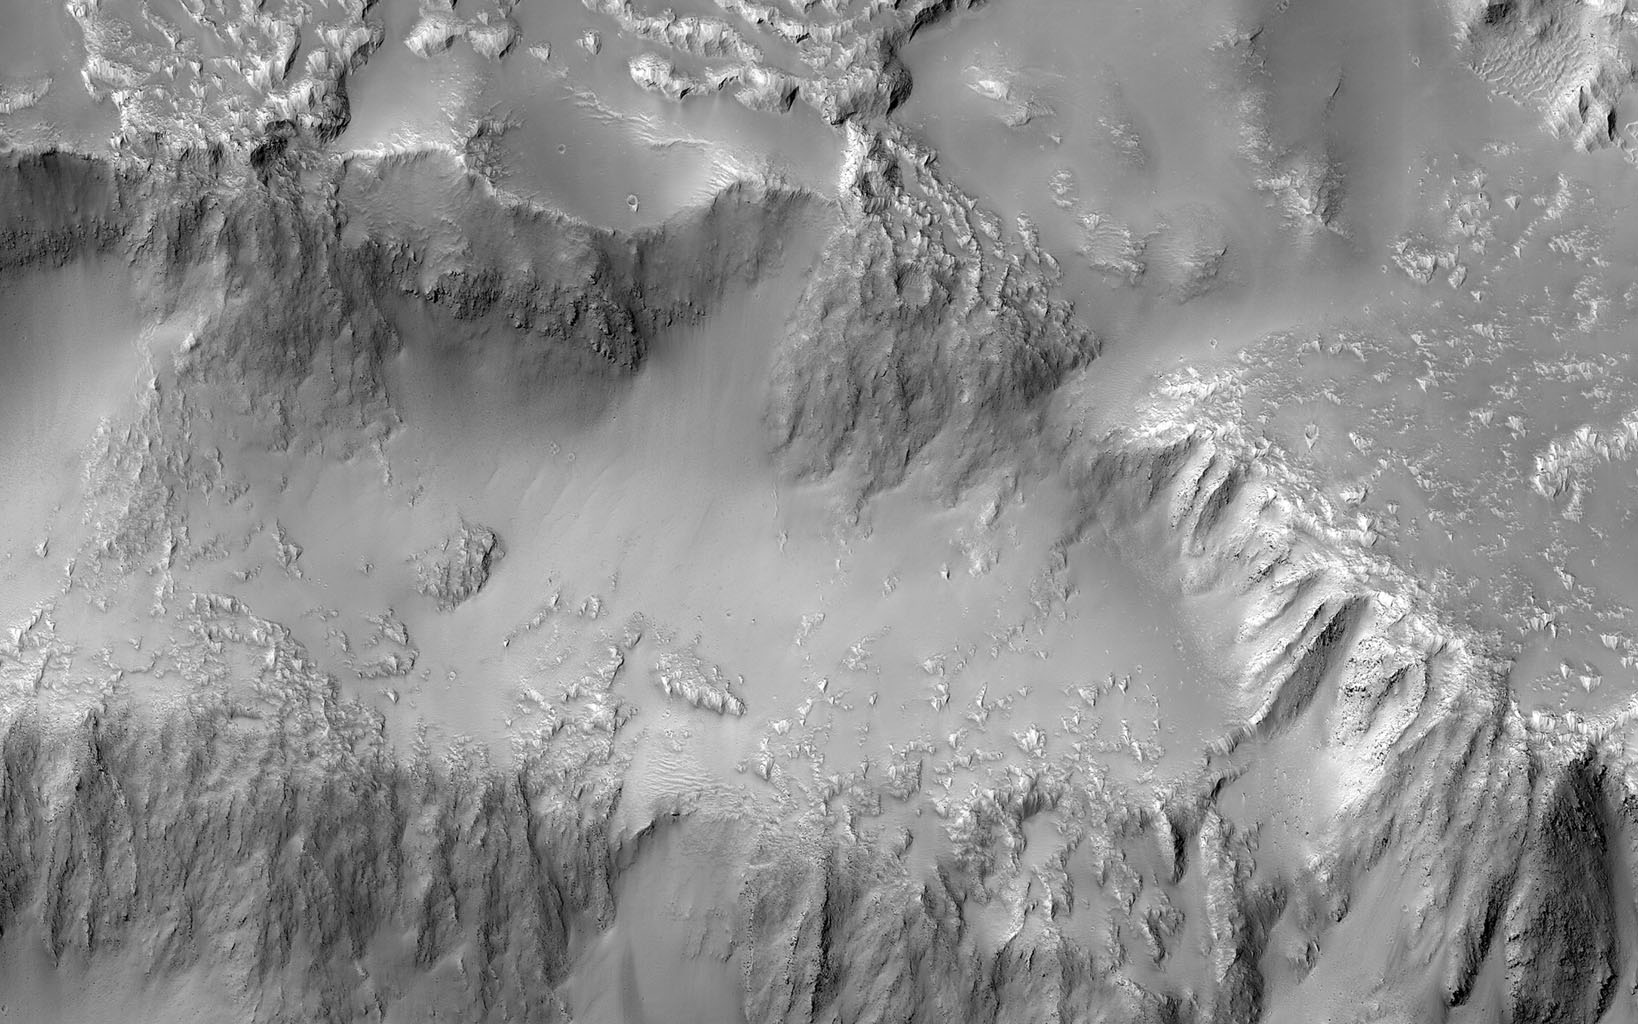 This image from NASA's Mars Reconnaissance Orbiter shows the northern rim of a 30-kilometer diameter crater situated in the western part of the Tharsis volcanic province.